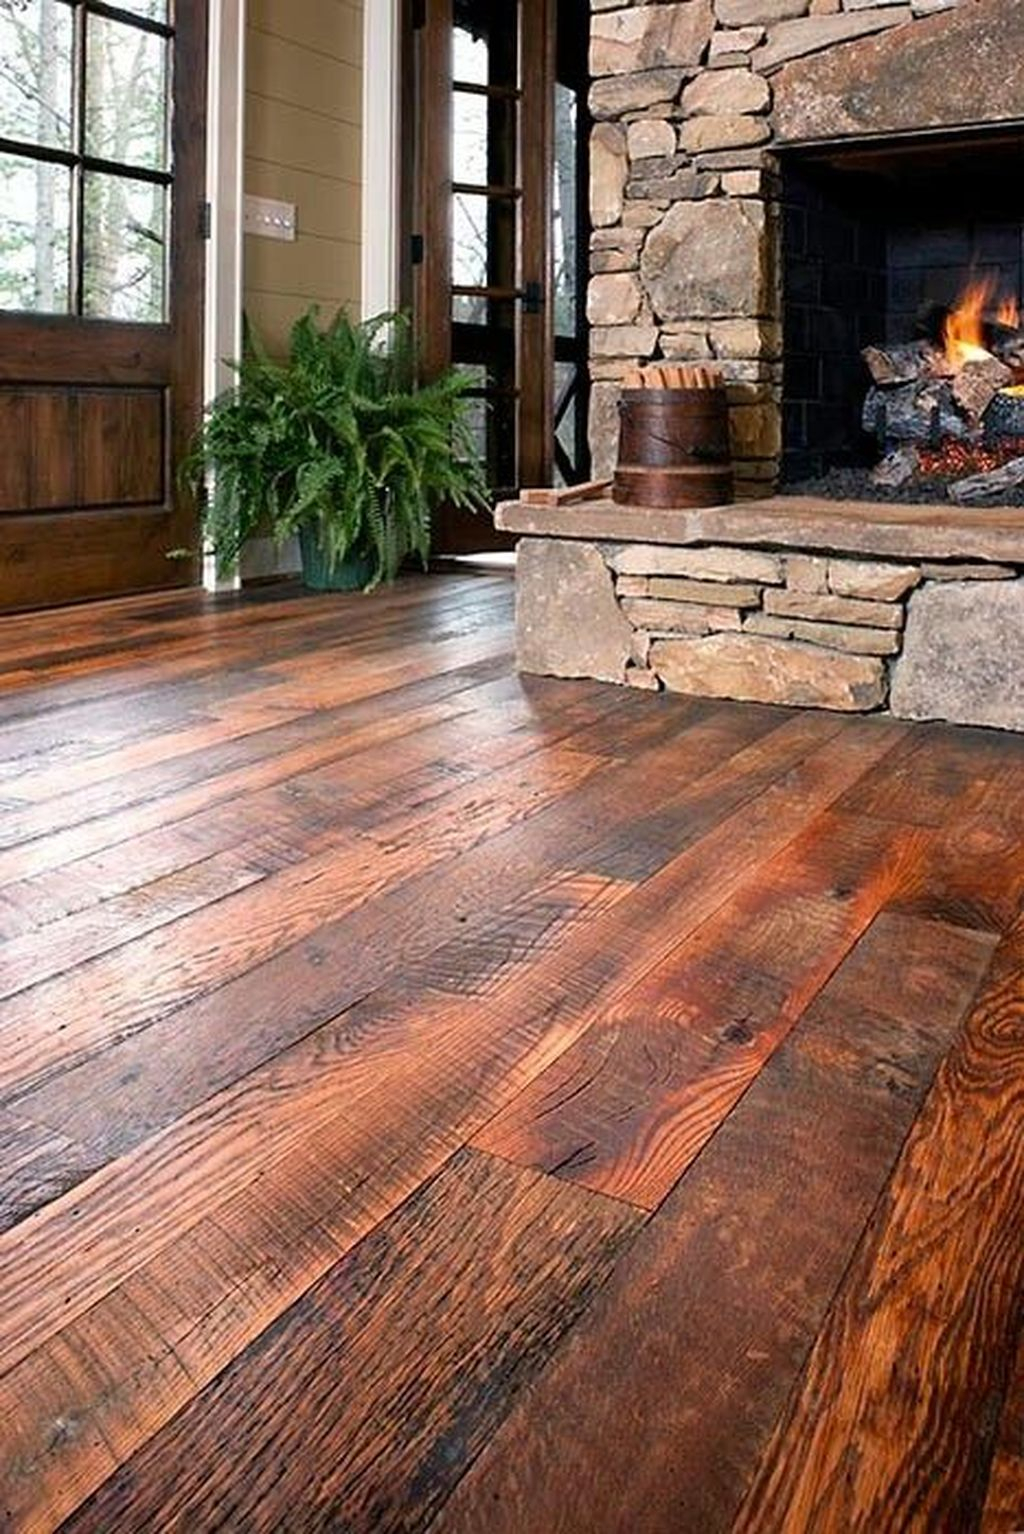 Inspiring Rustic Wooden Floor Living Room Design29